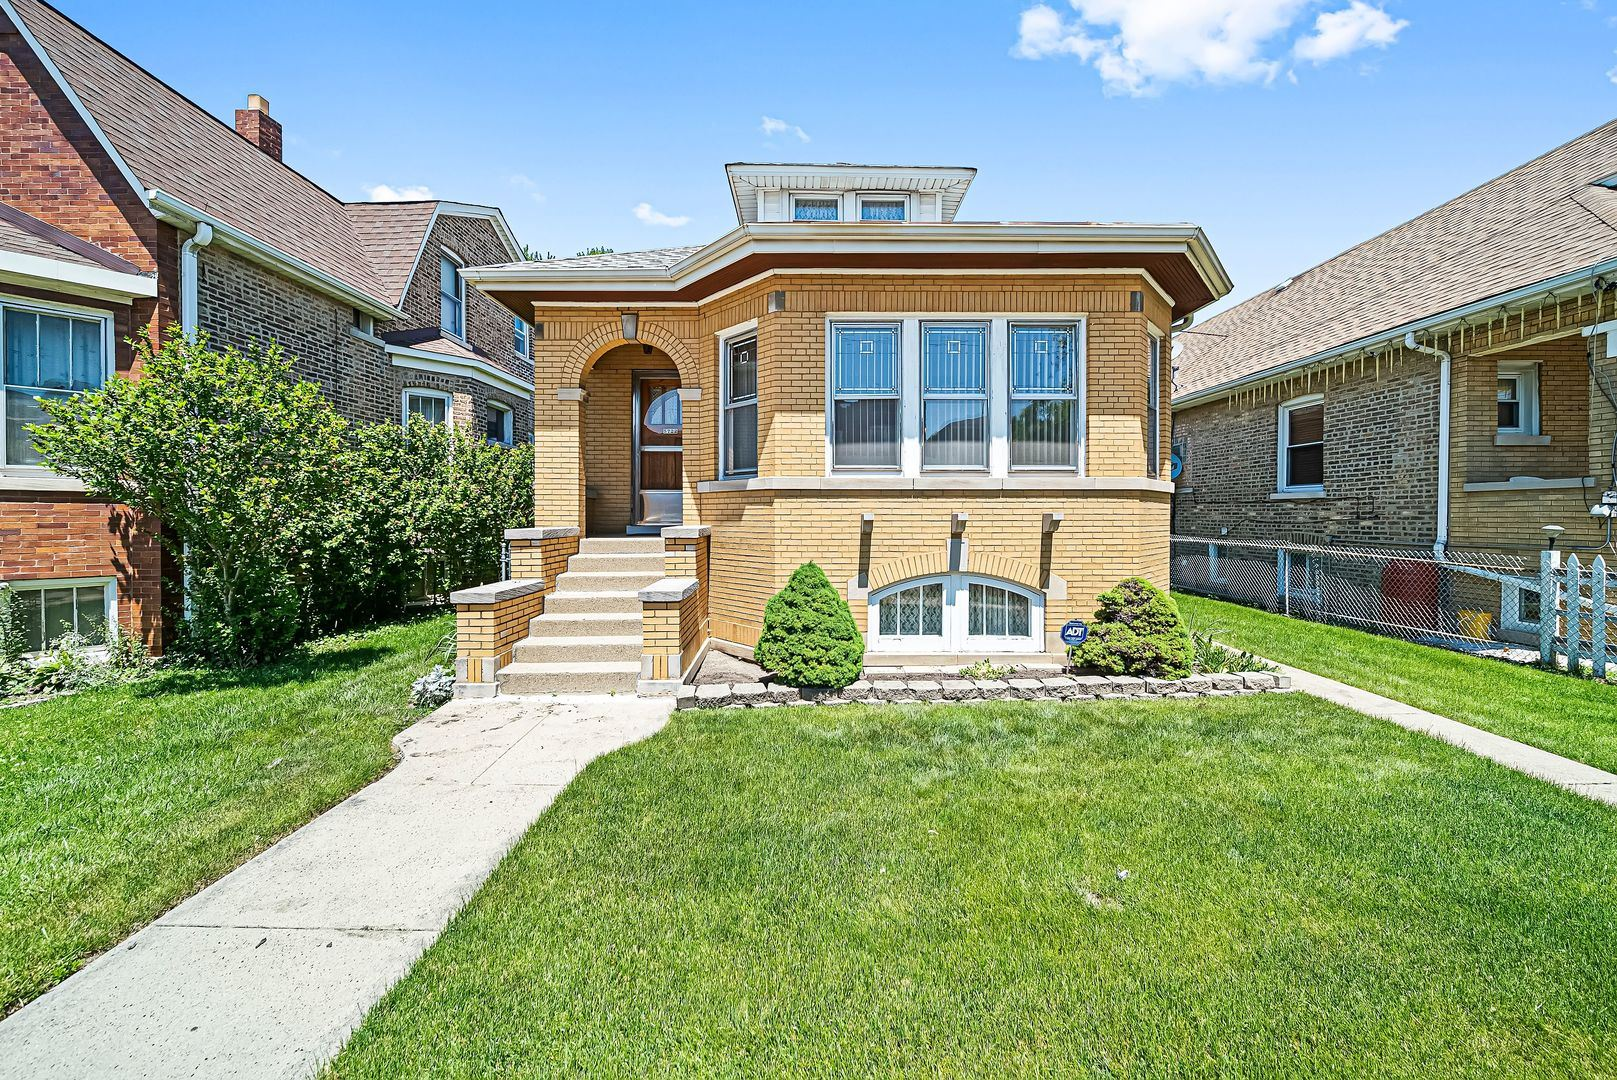 5722 W ADDISON Street, Chicago, IL 60634 - #: 10740353